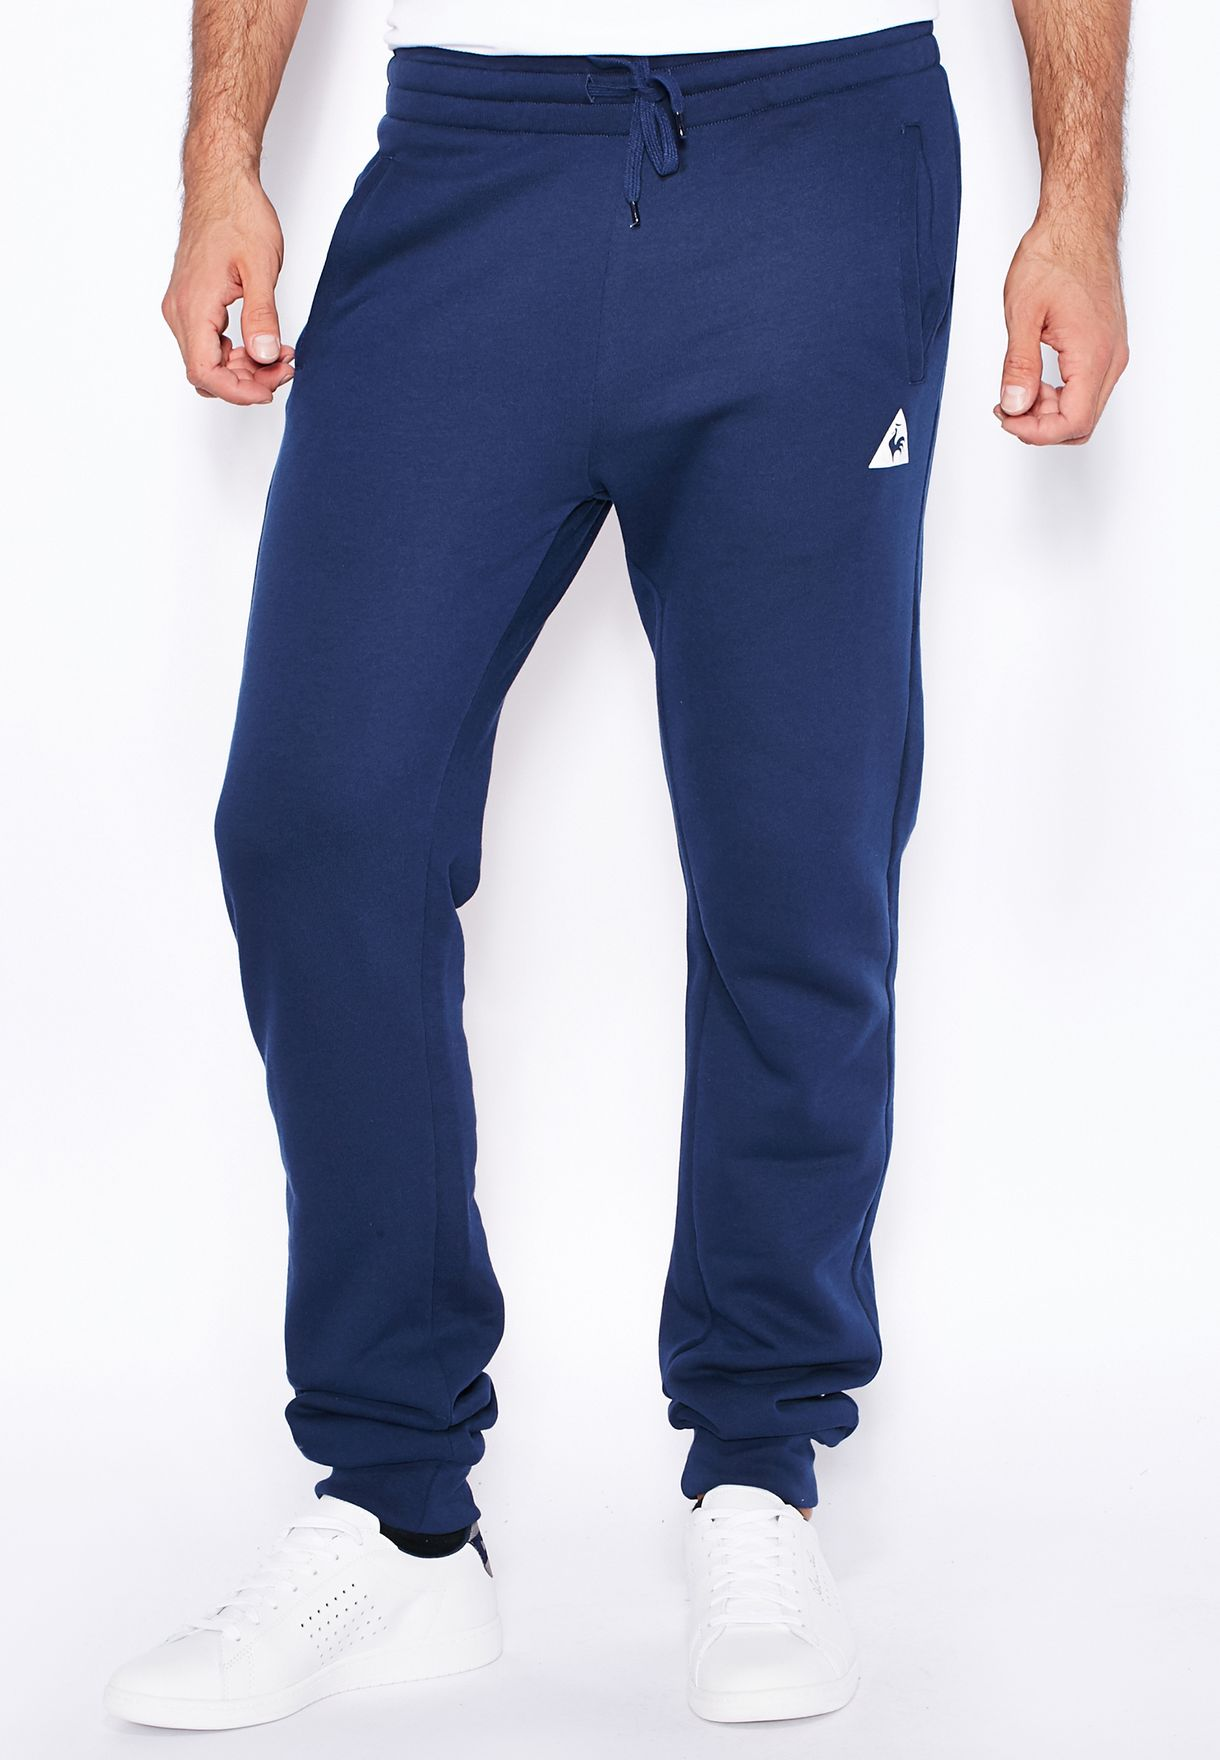 35b31402a0 Shop Le Coq Sportif navy Cavaro Sweatpants for Men in Bahrain ...